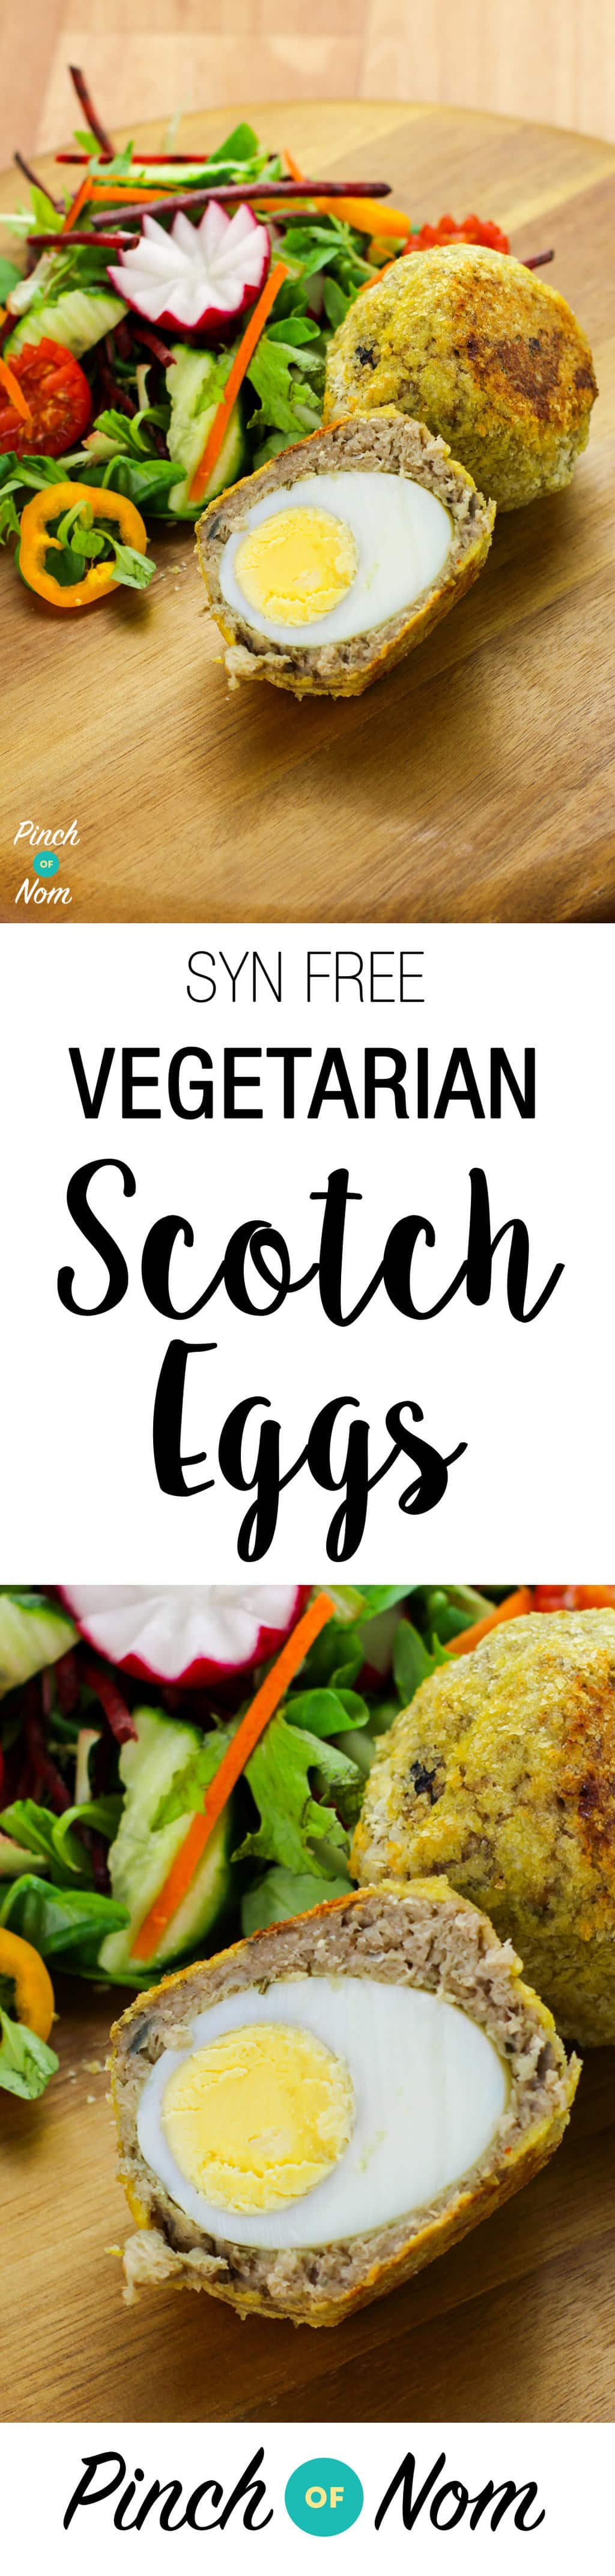 Veg-Scotch-Eggs-pinterest